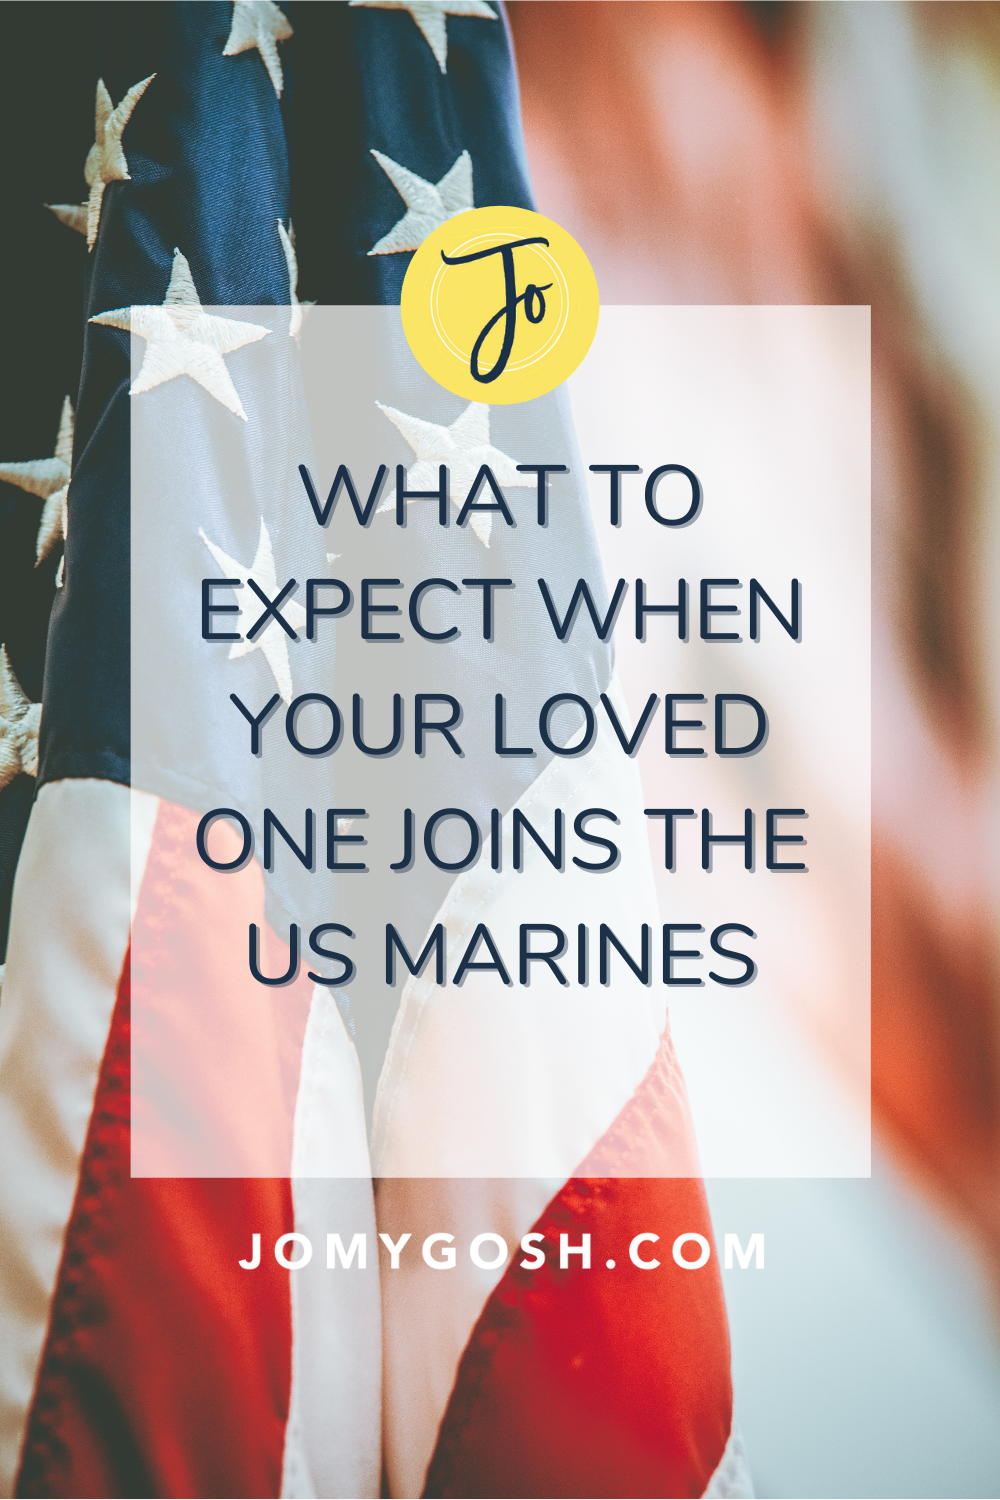 What happens when someone you love joins the few, the proud, the US Marines? This step-by-step explainer will help demystify the process of turning a military recruit into a Marine. #militaryspouse #militarymom #milspouse #militaryfamily #milfam #milfams #military #marines #usmarines #semperfi #semperfidelis